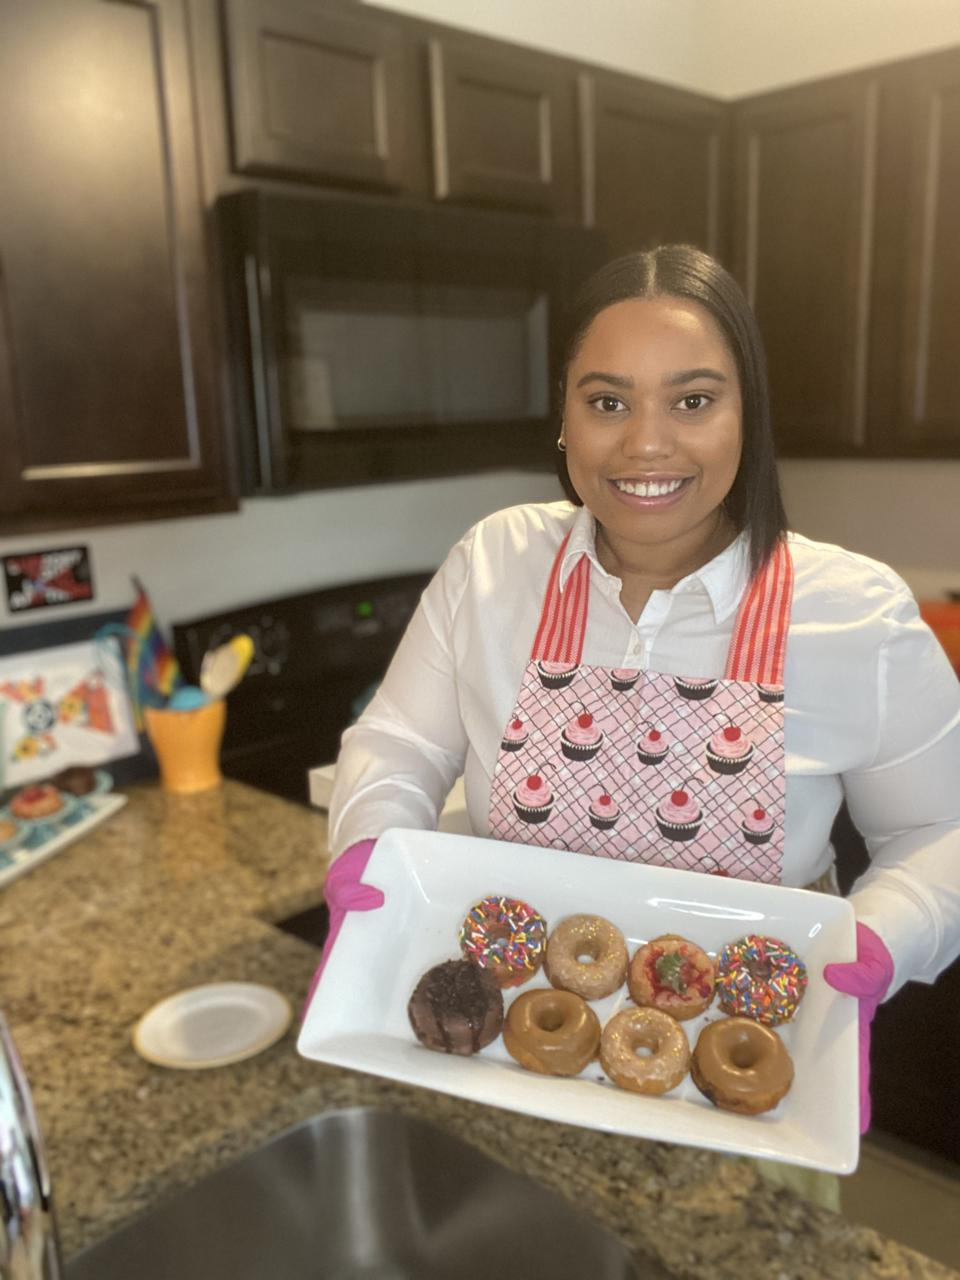 Founder of Hungry Bunny, Khloe Hines.